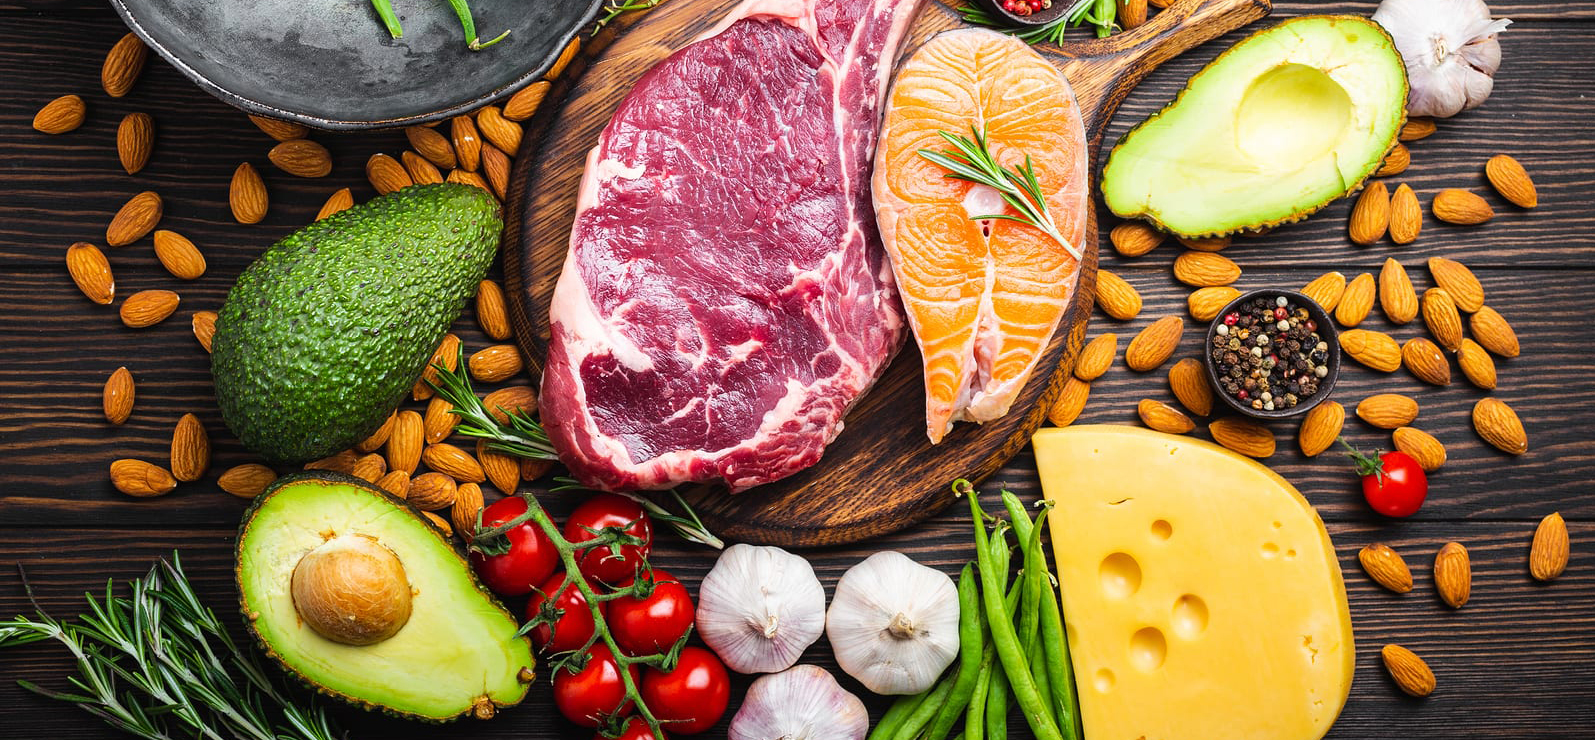 11 Foods that may Boost Testosterone (Testosterone-Boosting Foods)